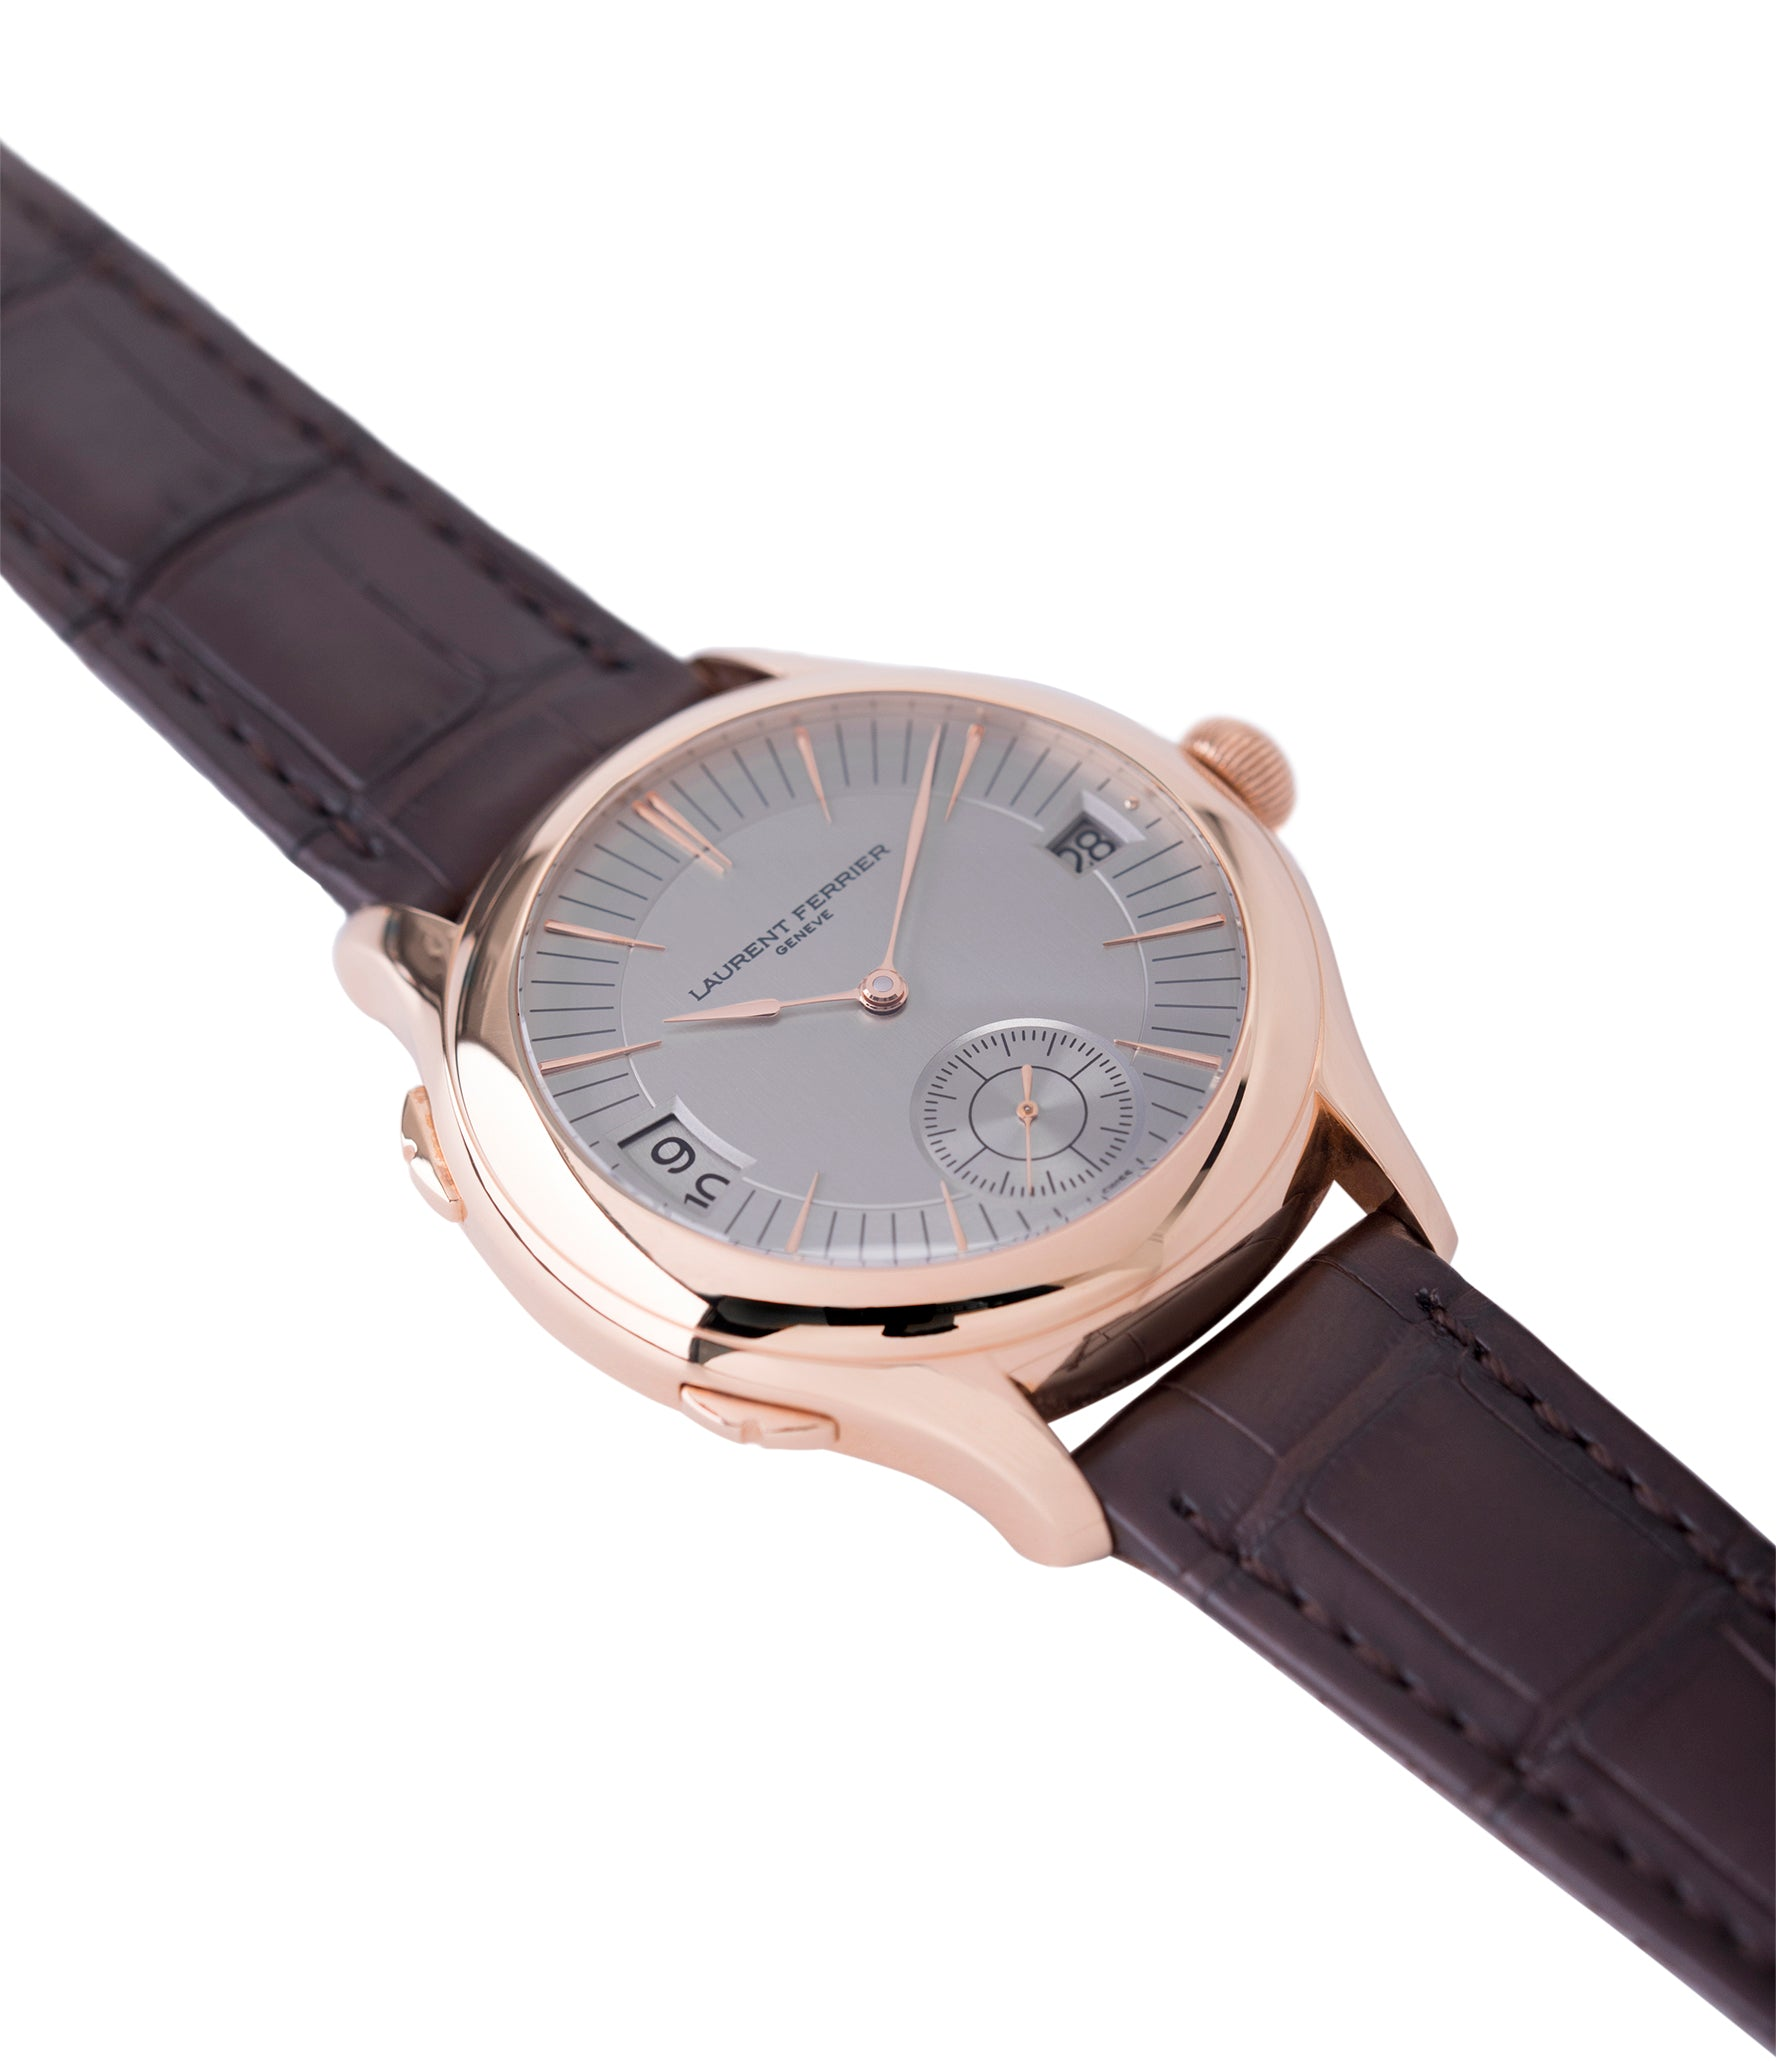 for sale Laurent Ferrier Galet Traveller Micro Rotor LF 230.01 rose gold watch additional prototype dial for sale online at A Collected Man London UK approved reseller of preowned independent watchmakers